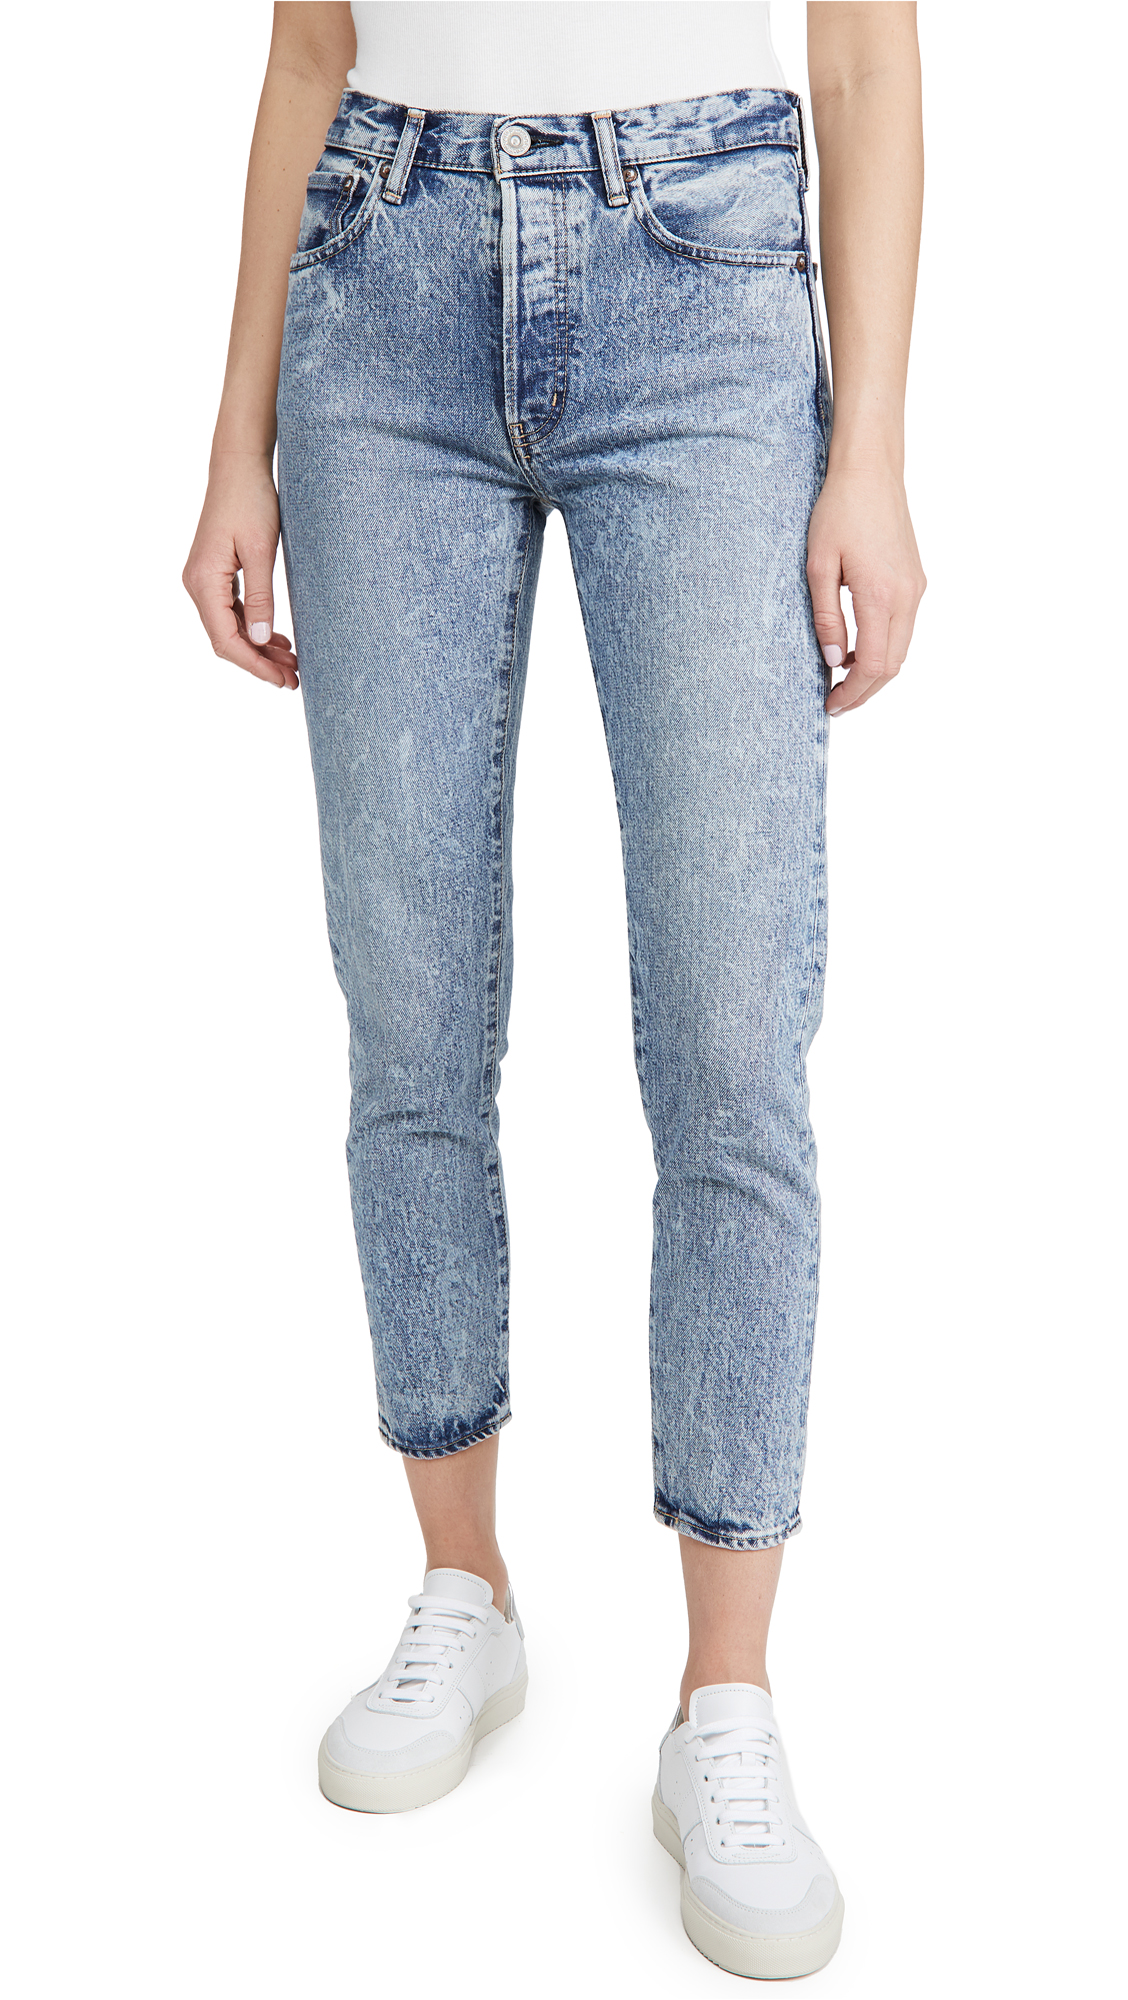 MOUSSY VINTAGE MV Howells Tapered Hi Jeans